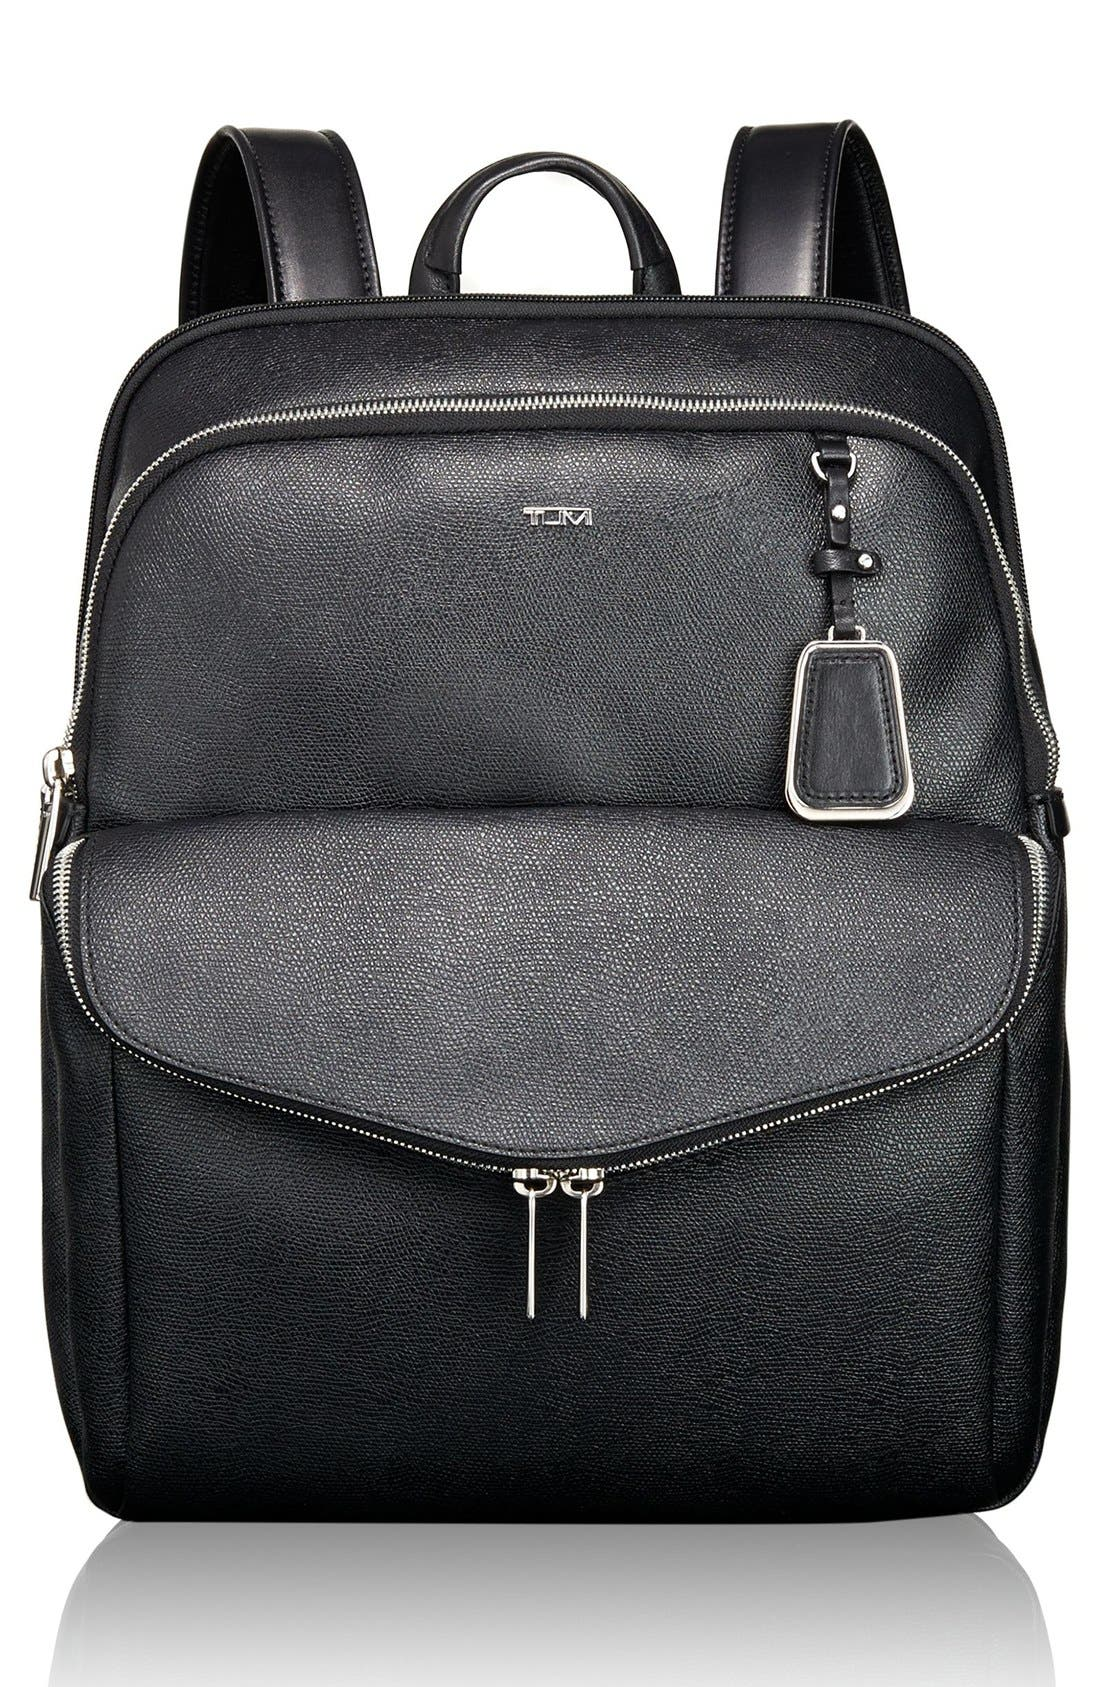 'Sinclair Harlow' Coated Canvas Laptop Backpack,                             Main thumbnail 1, color,                             002